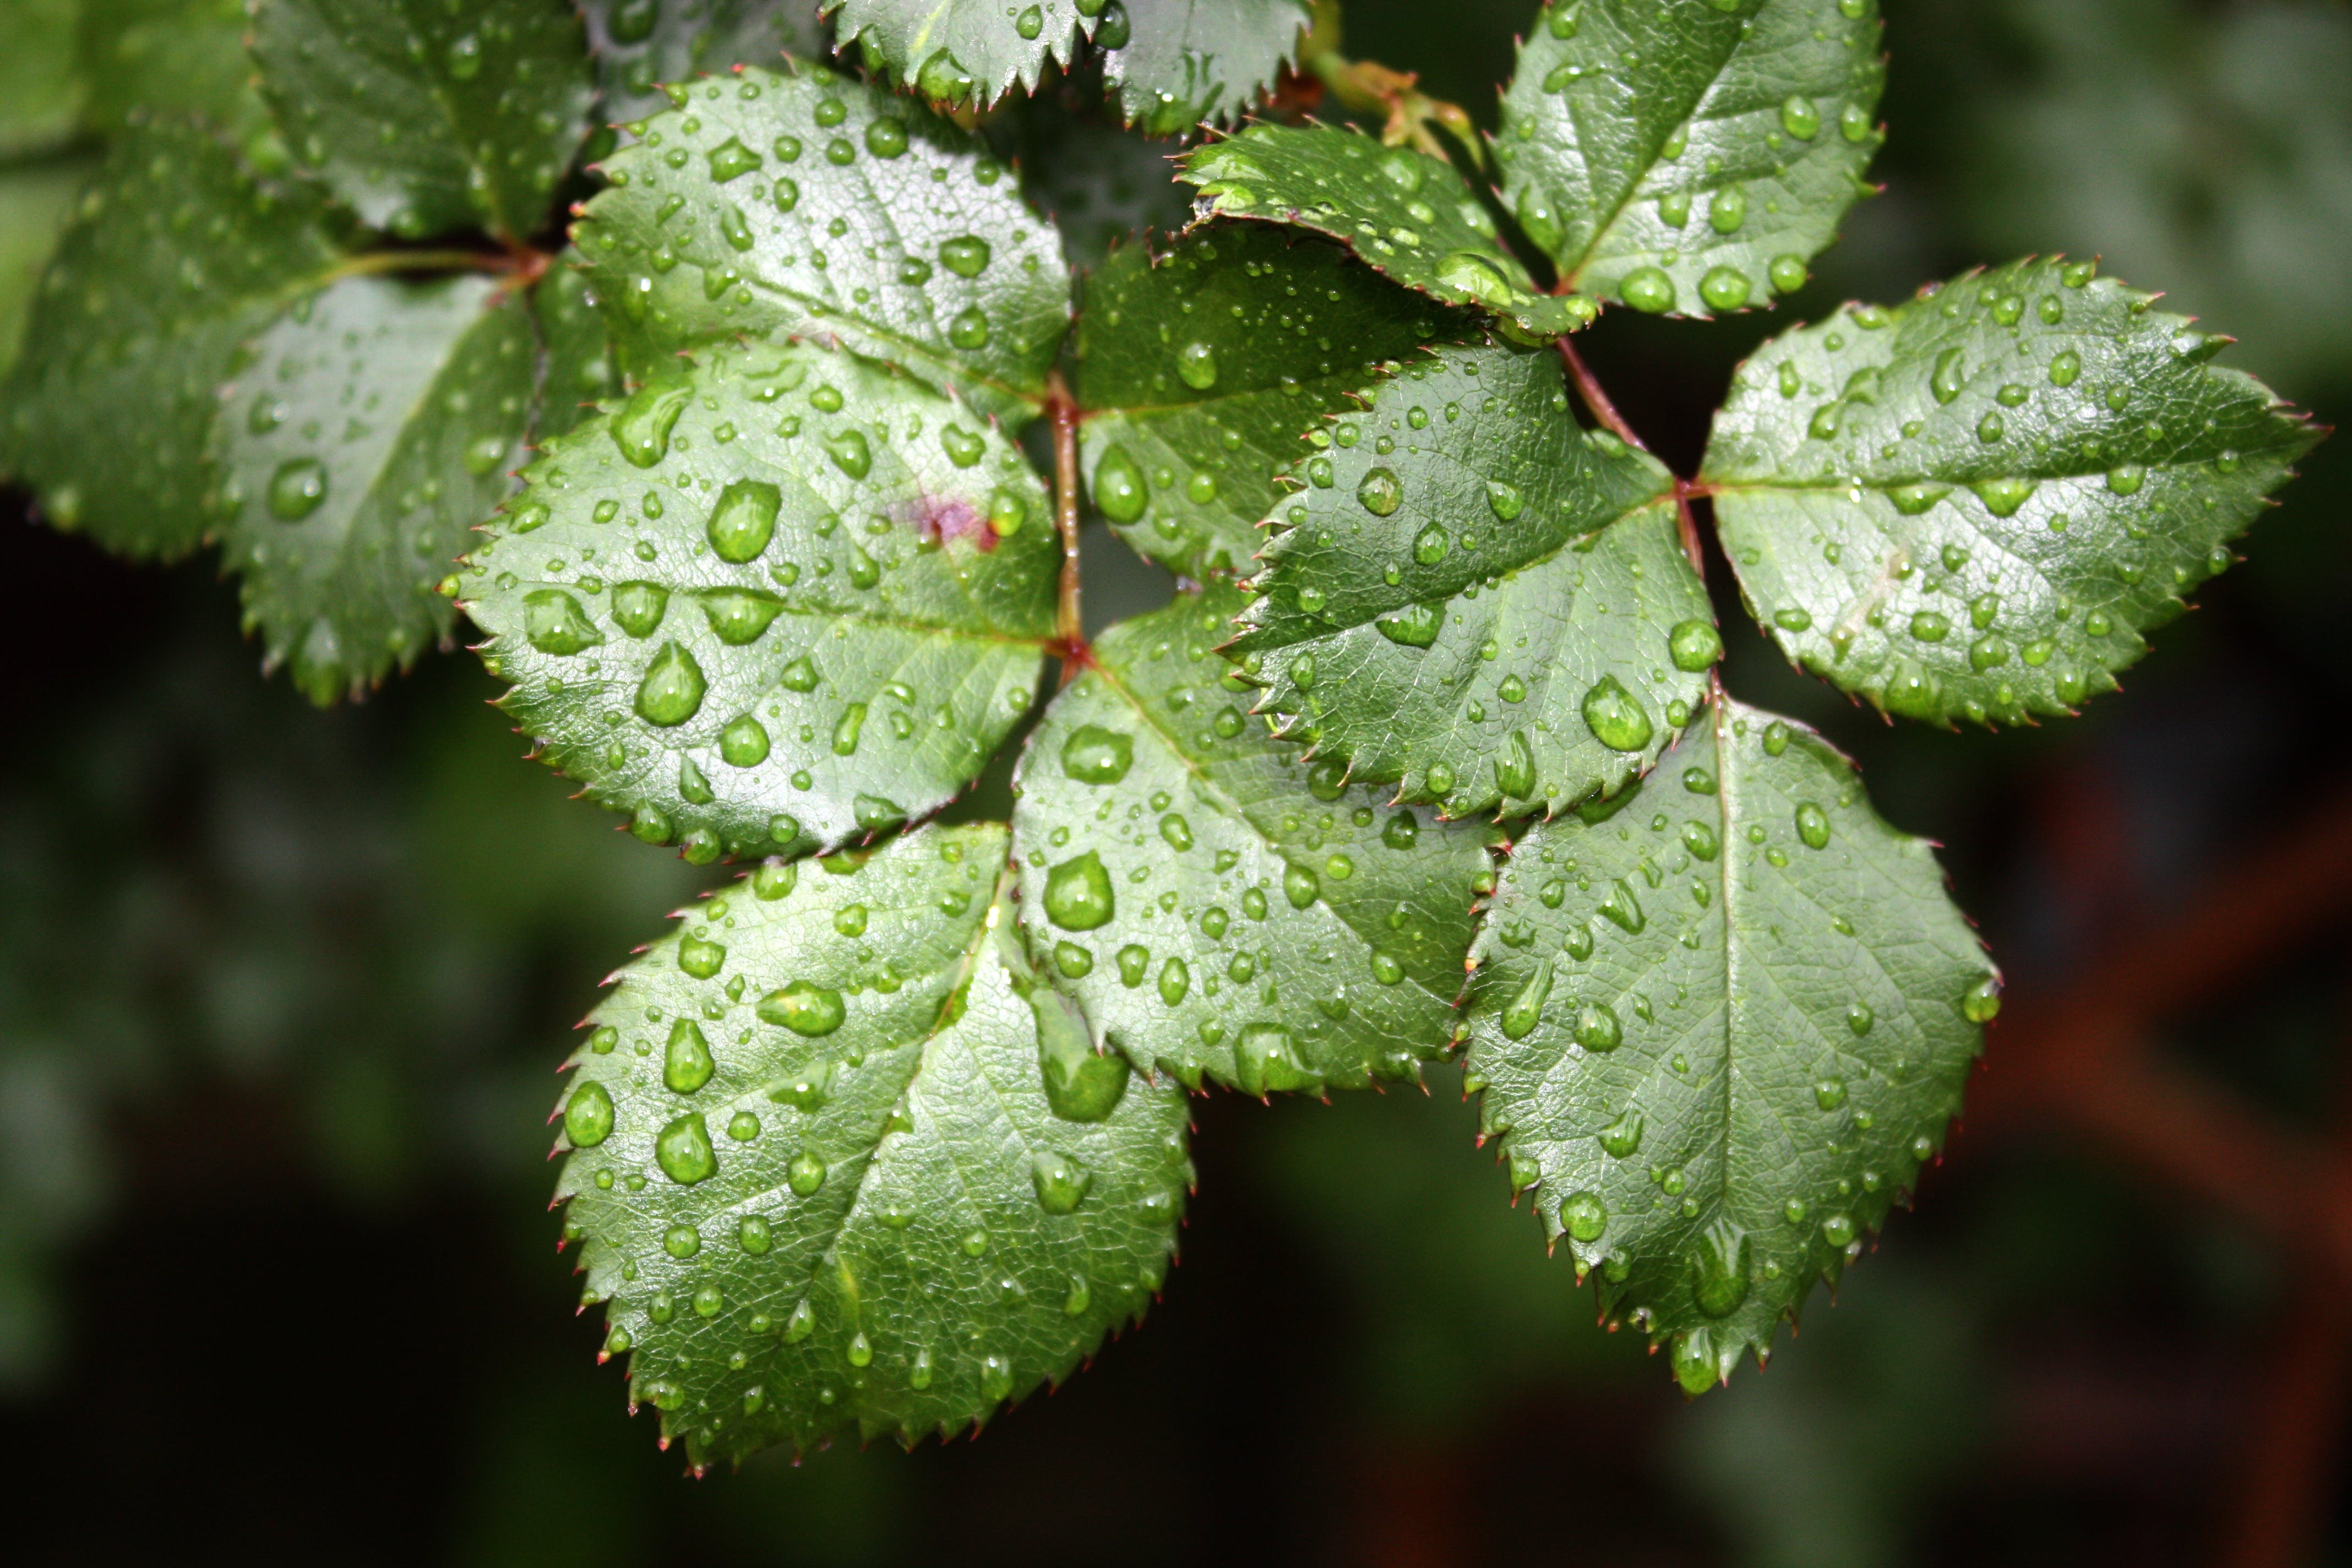 Free stock photo of nature, leaf, raindrops, close-up